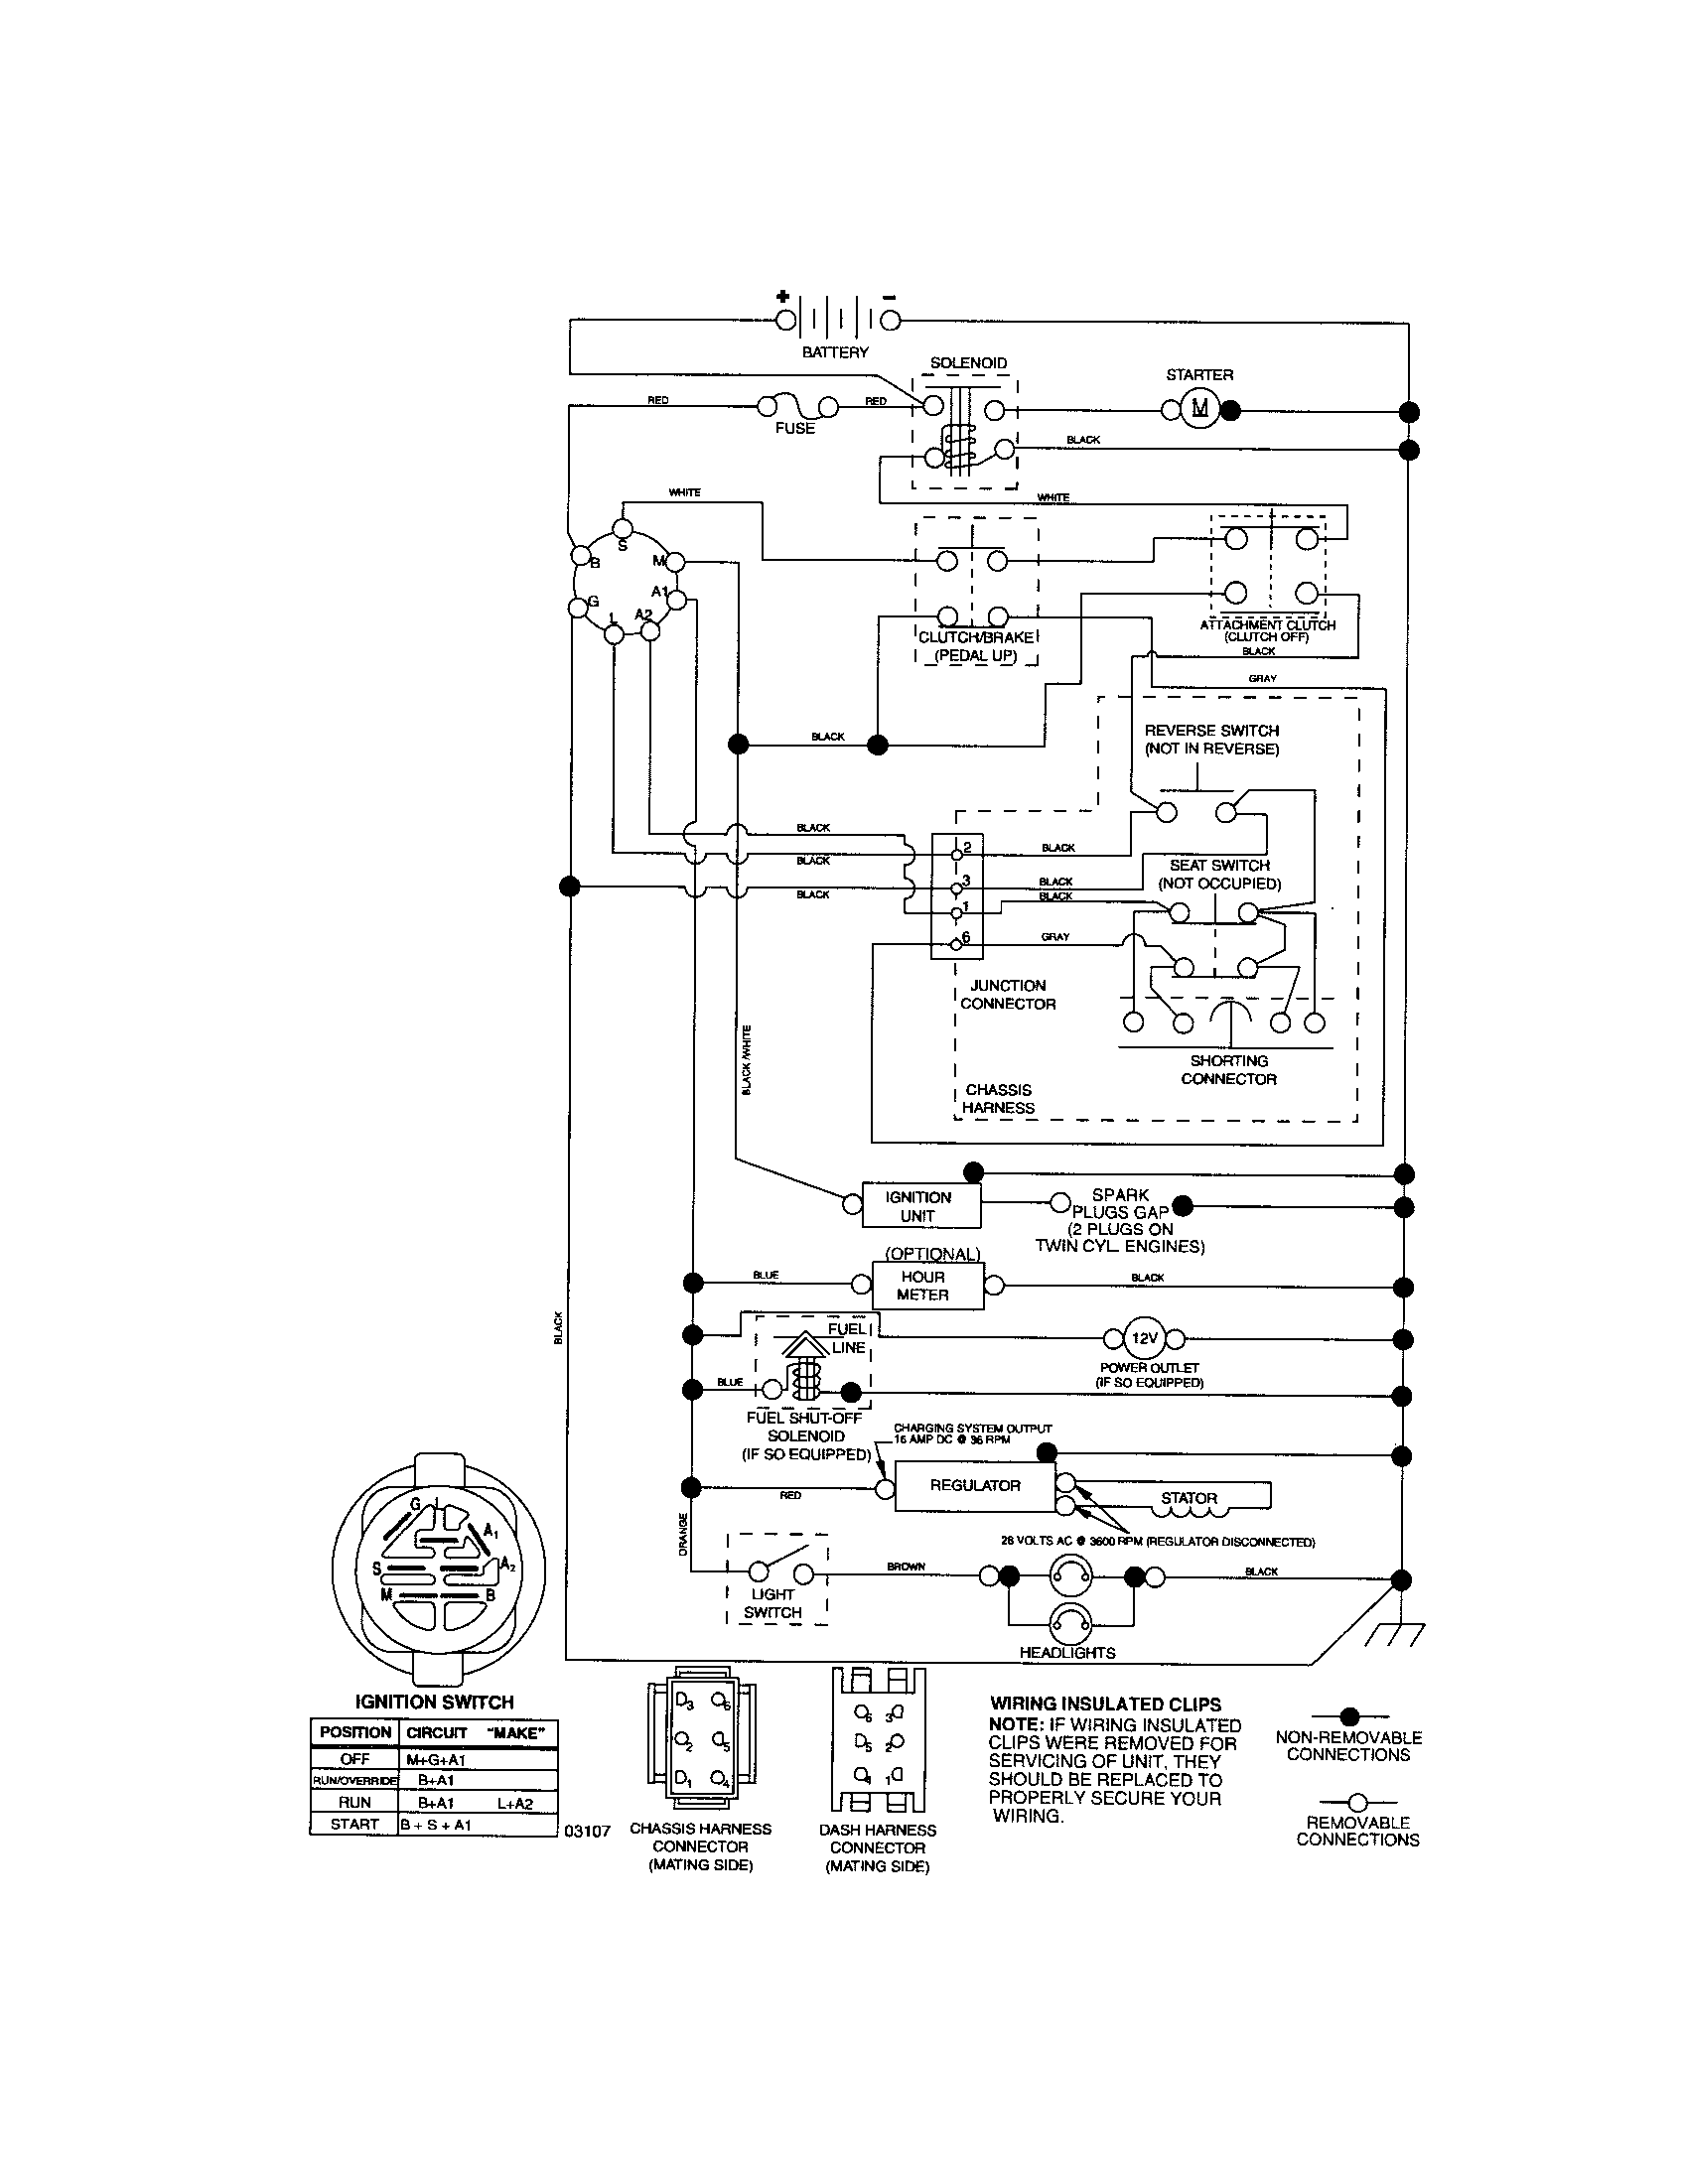 6af5f1447fd13c8443376822ddc1e105 craftsman riding mower electrical diagram wiring diagram murray lawn tractor wiring diagram at aneh.co